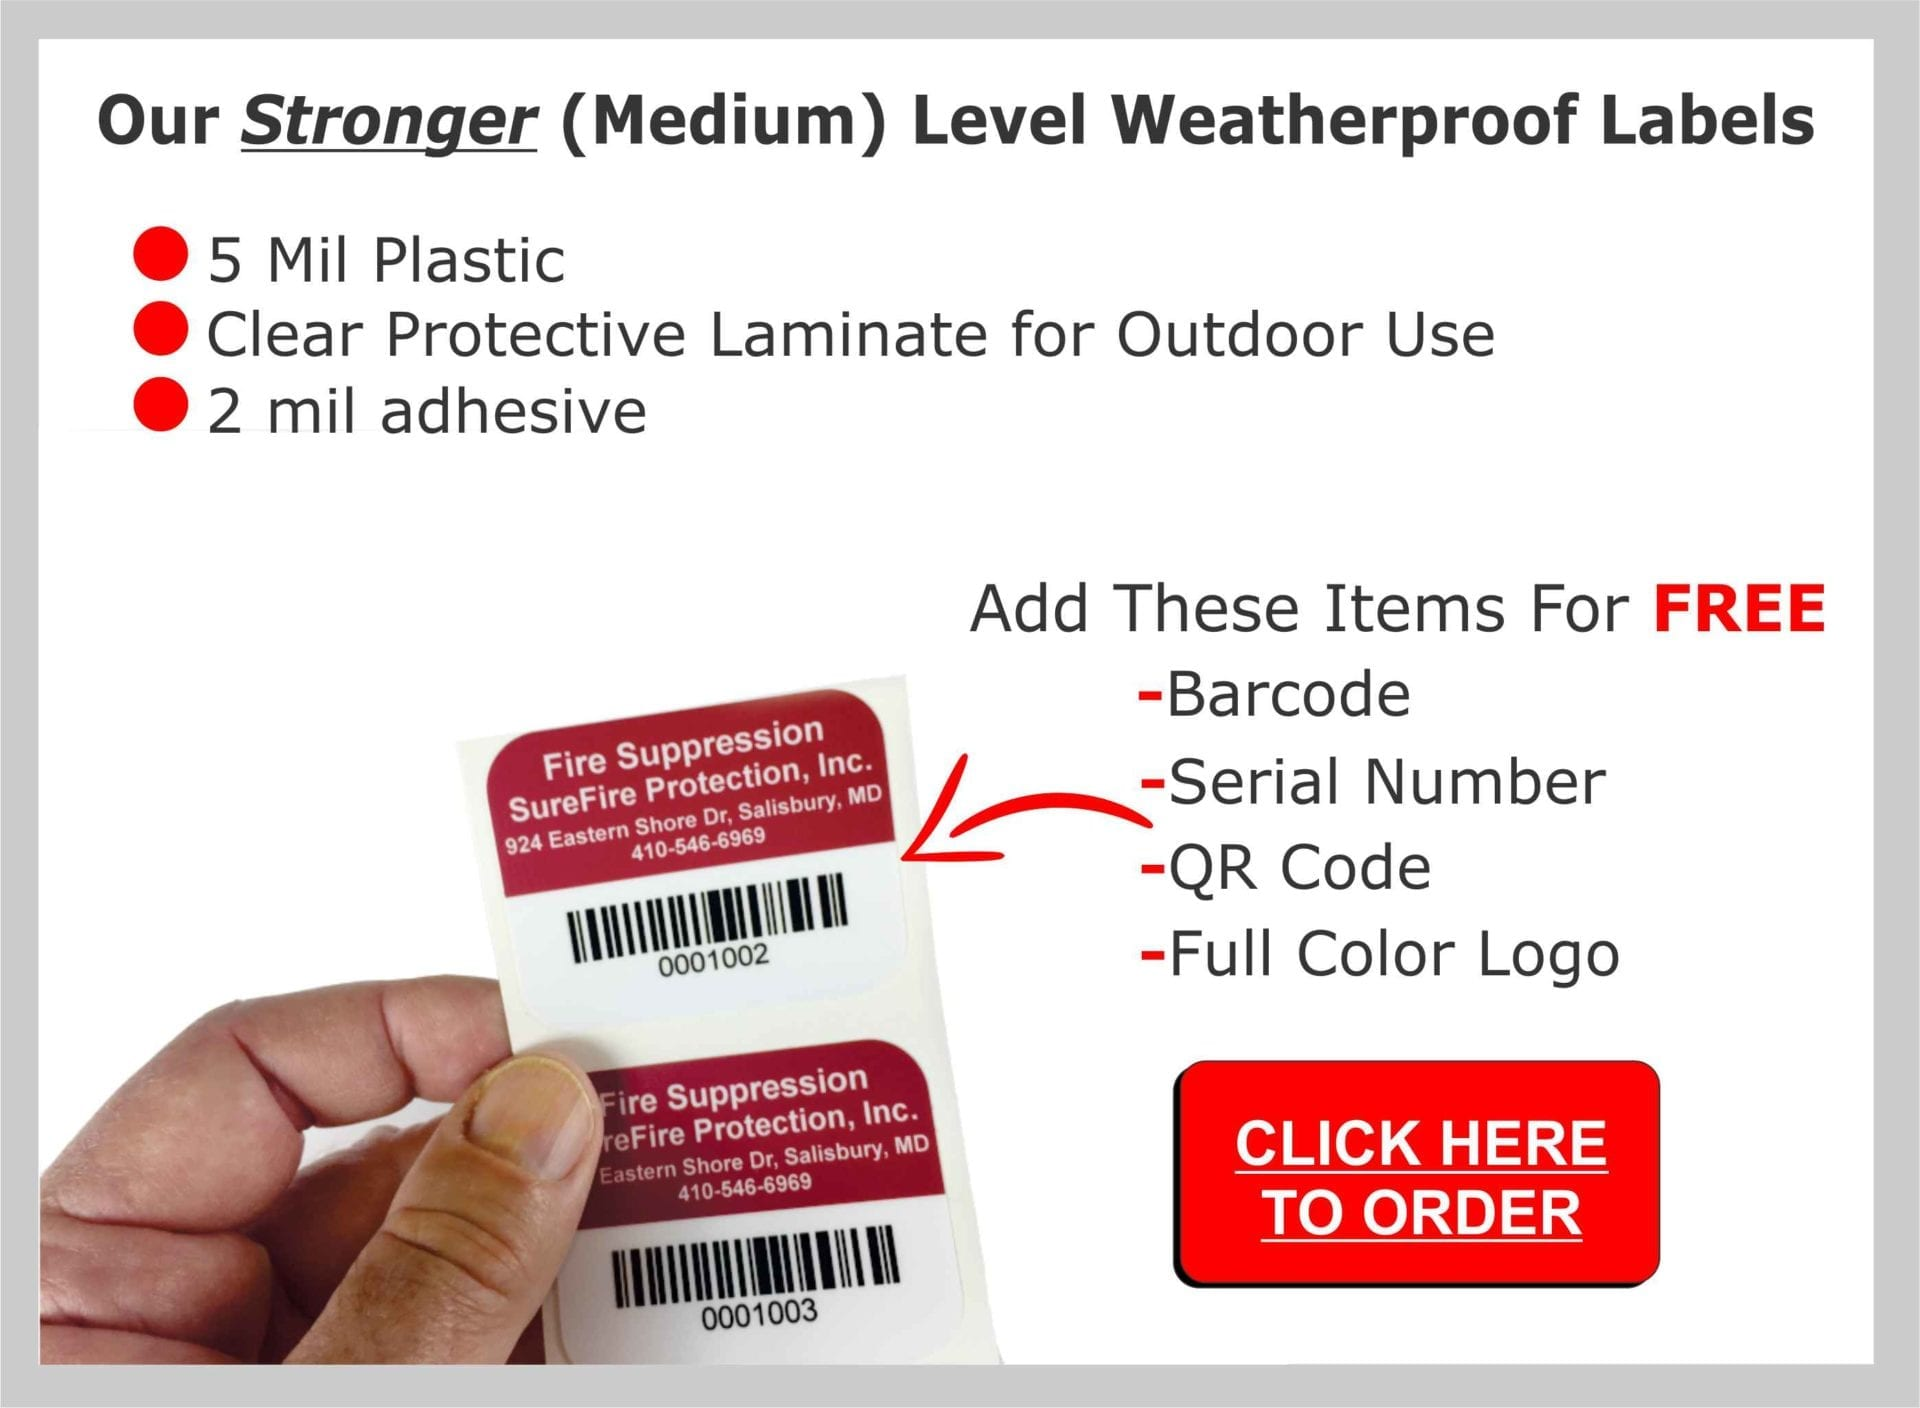 These are features of our stronger level asset tags for equipment